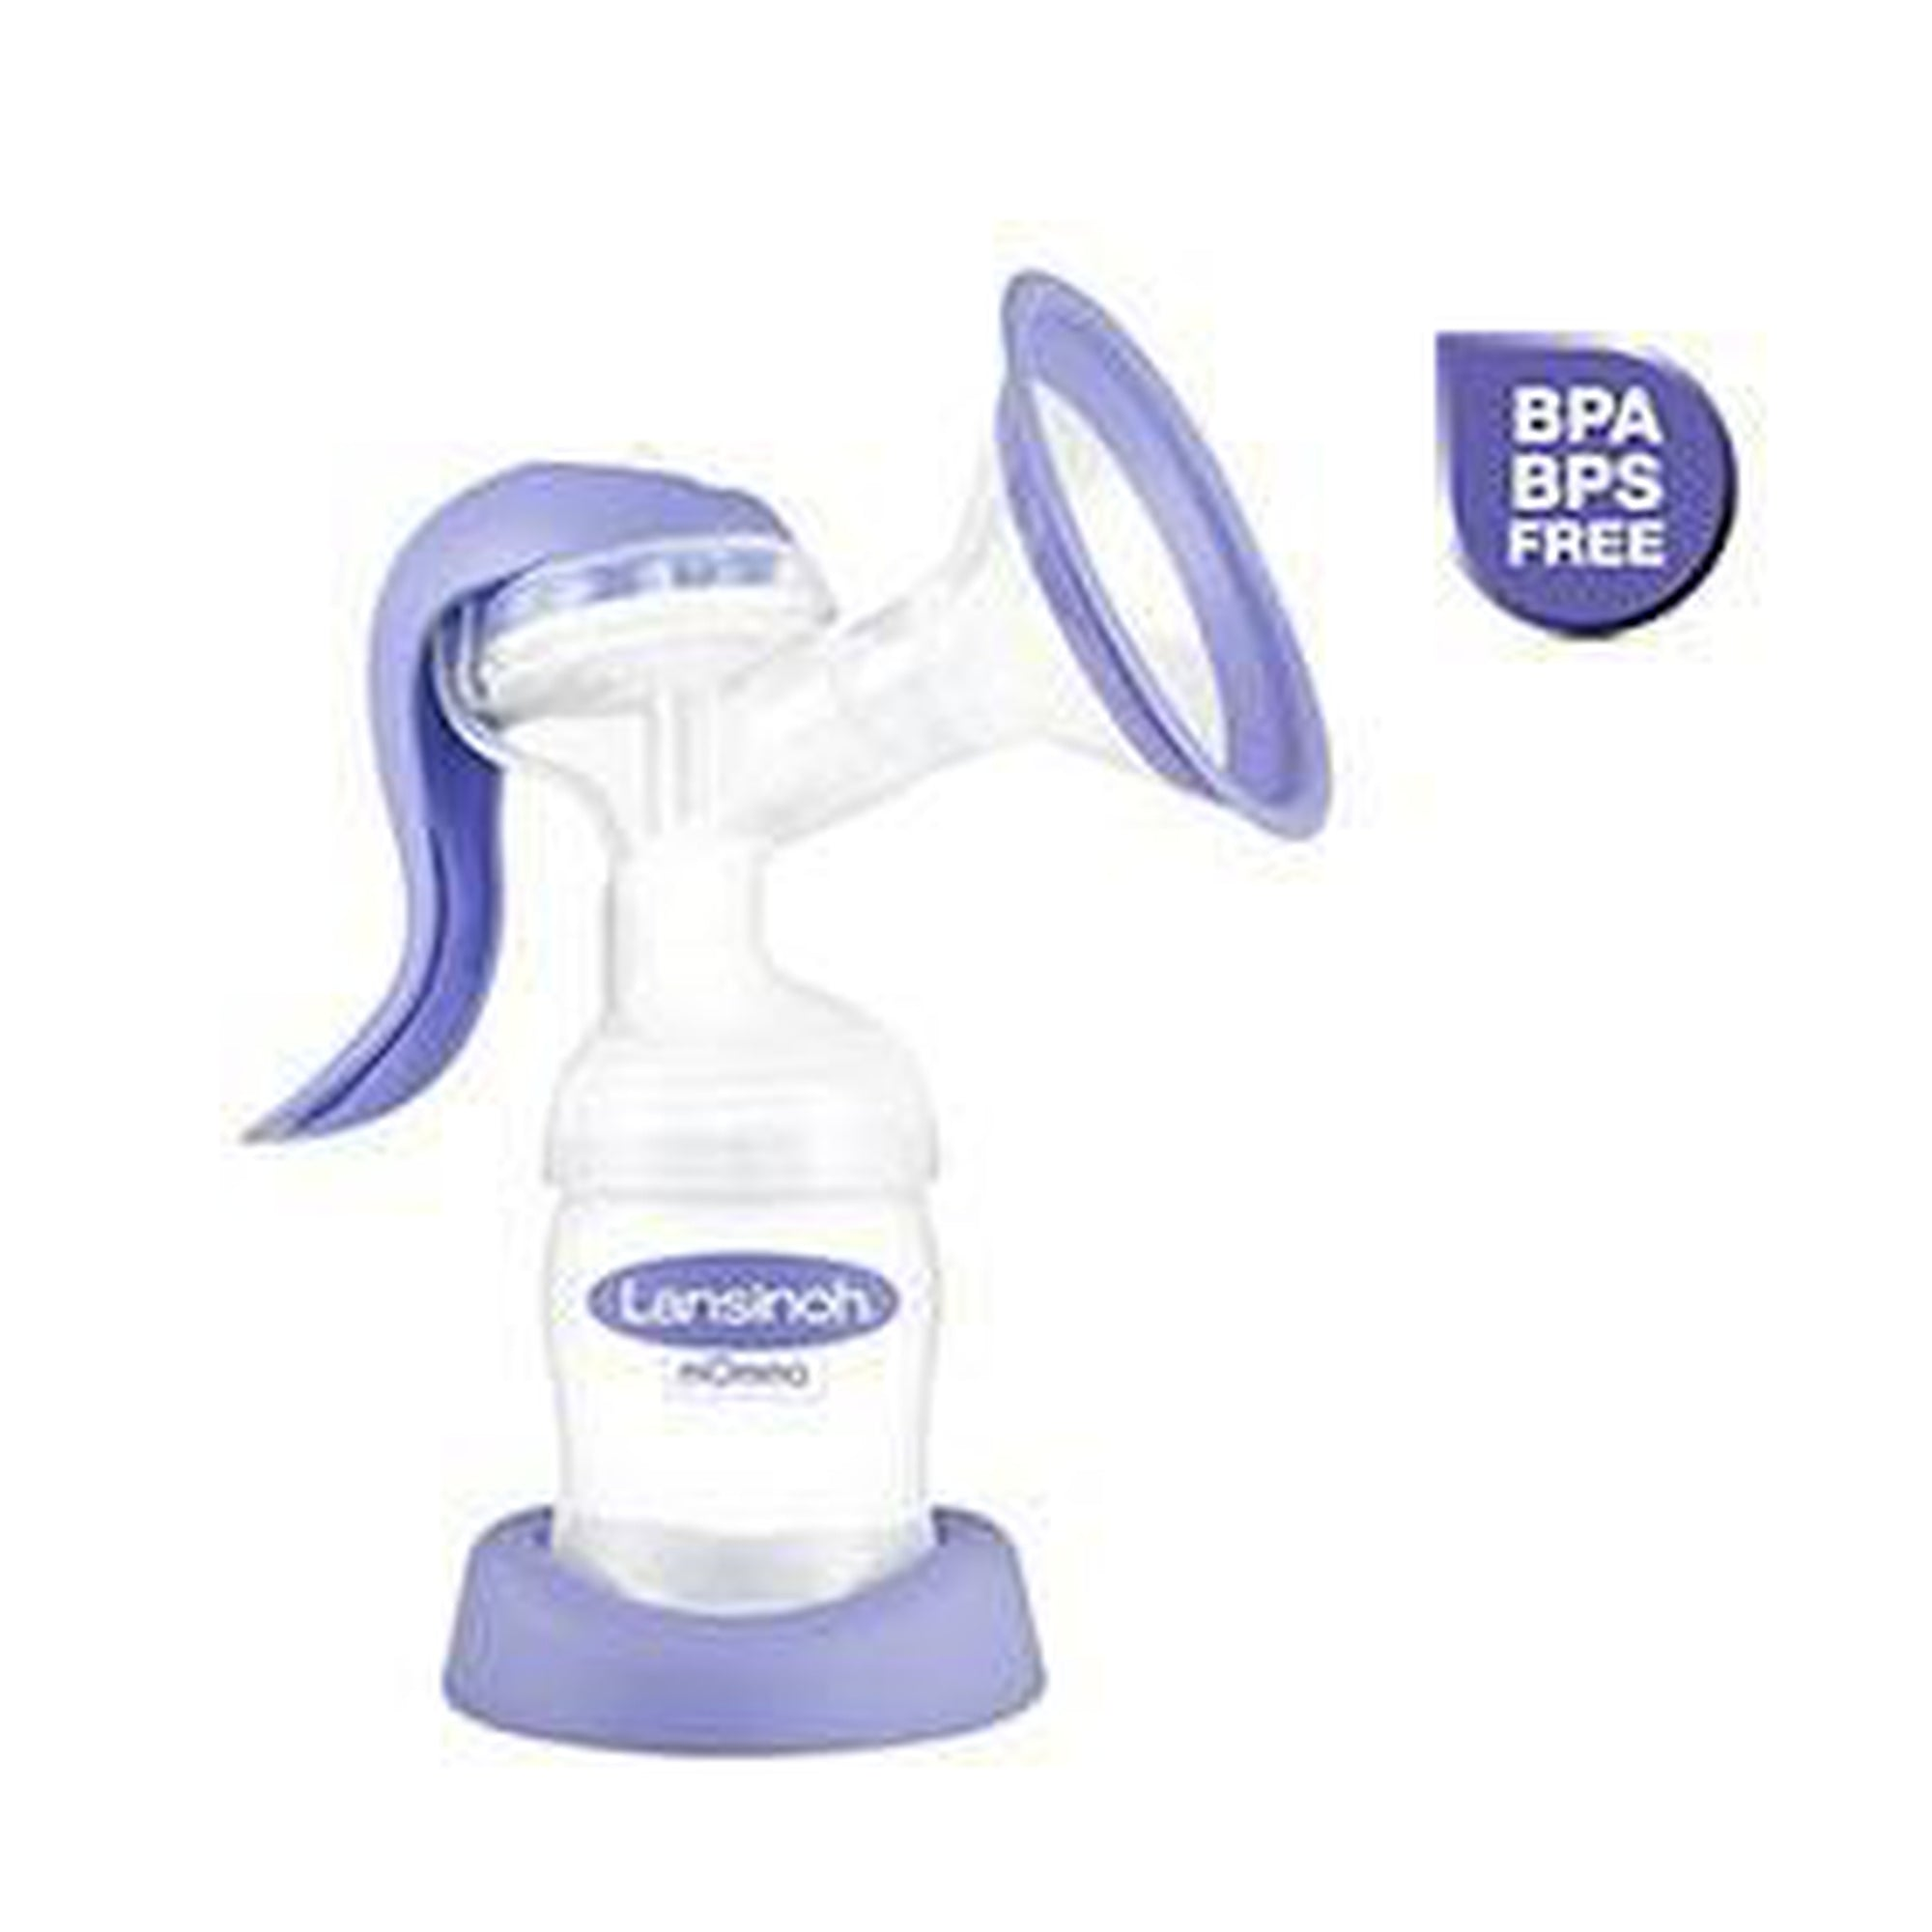 Lansinoh Manual Breastpump-Breast Pumps-Mother and Baby Shop Kenya's #1 Online Baby Shop